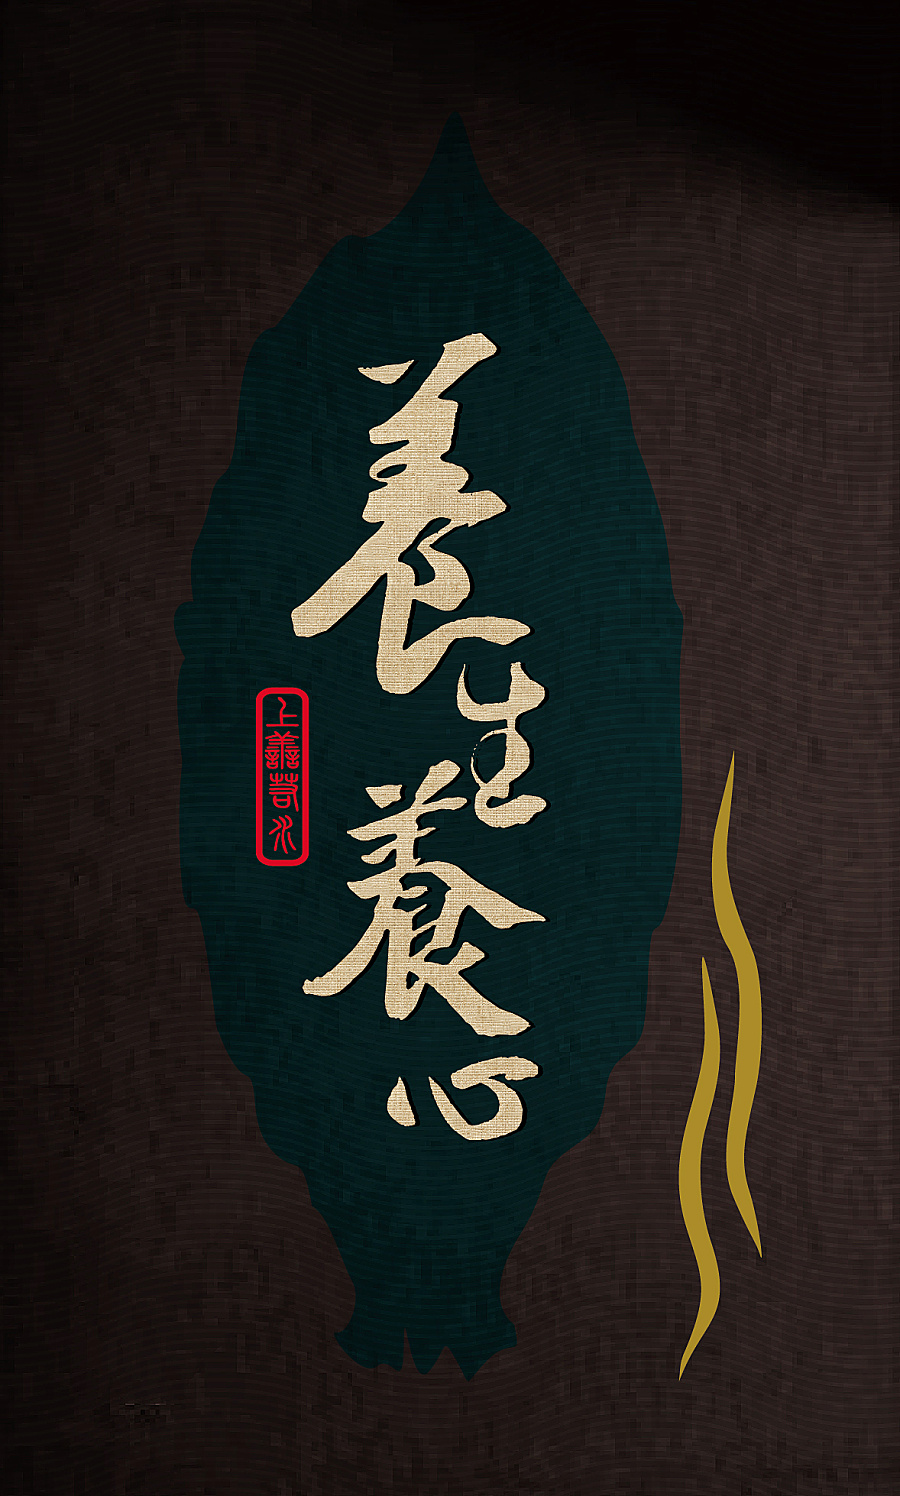 chinesefontdesign.com 2016 12 02 21 18 42 29P  Font design scheme of traditional Chinese style